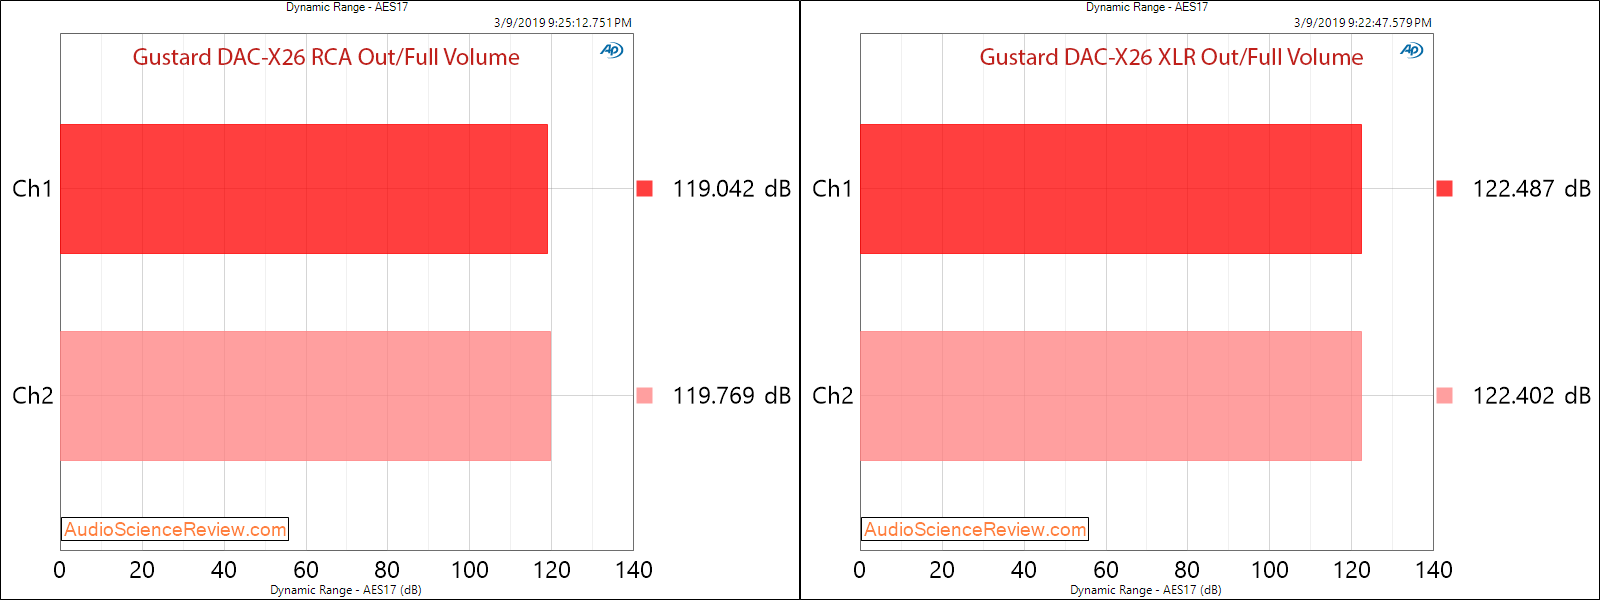 Gustard DAC-X26 DAC Balanced Audio Dynamic Range measurements.png